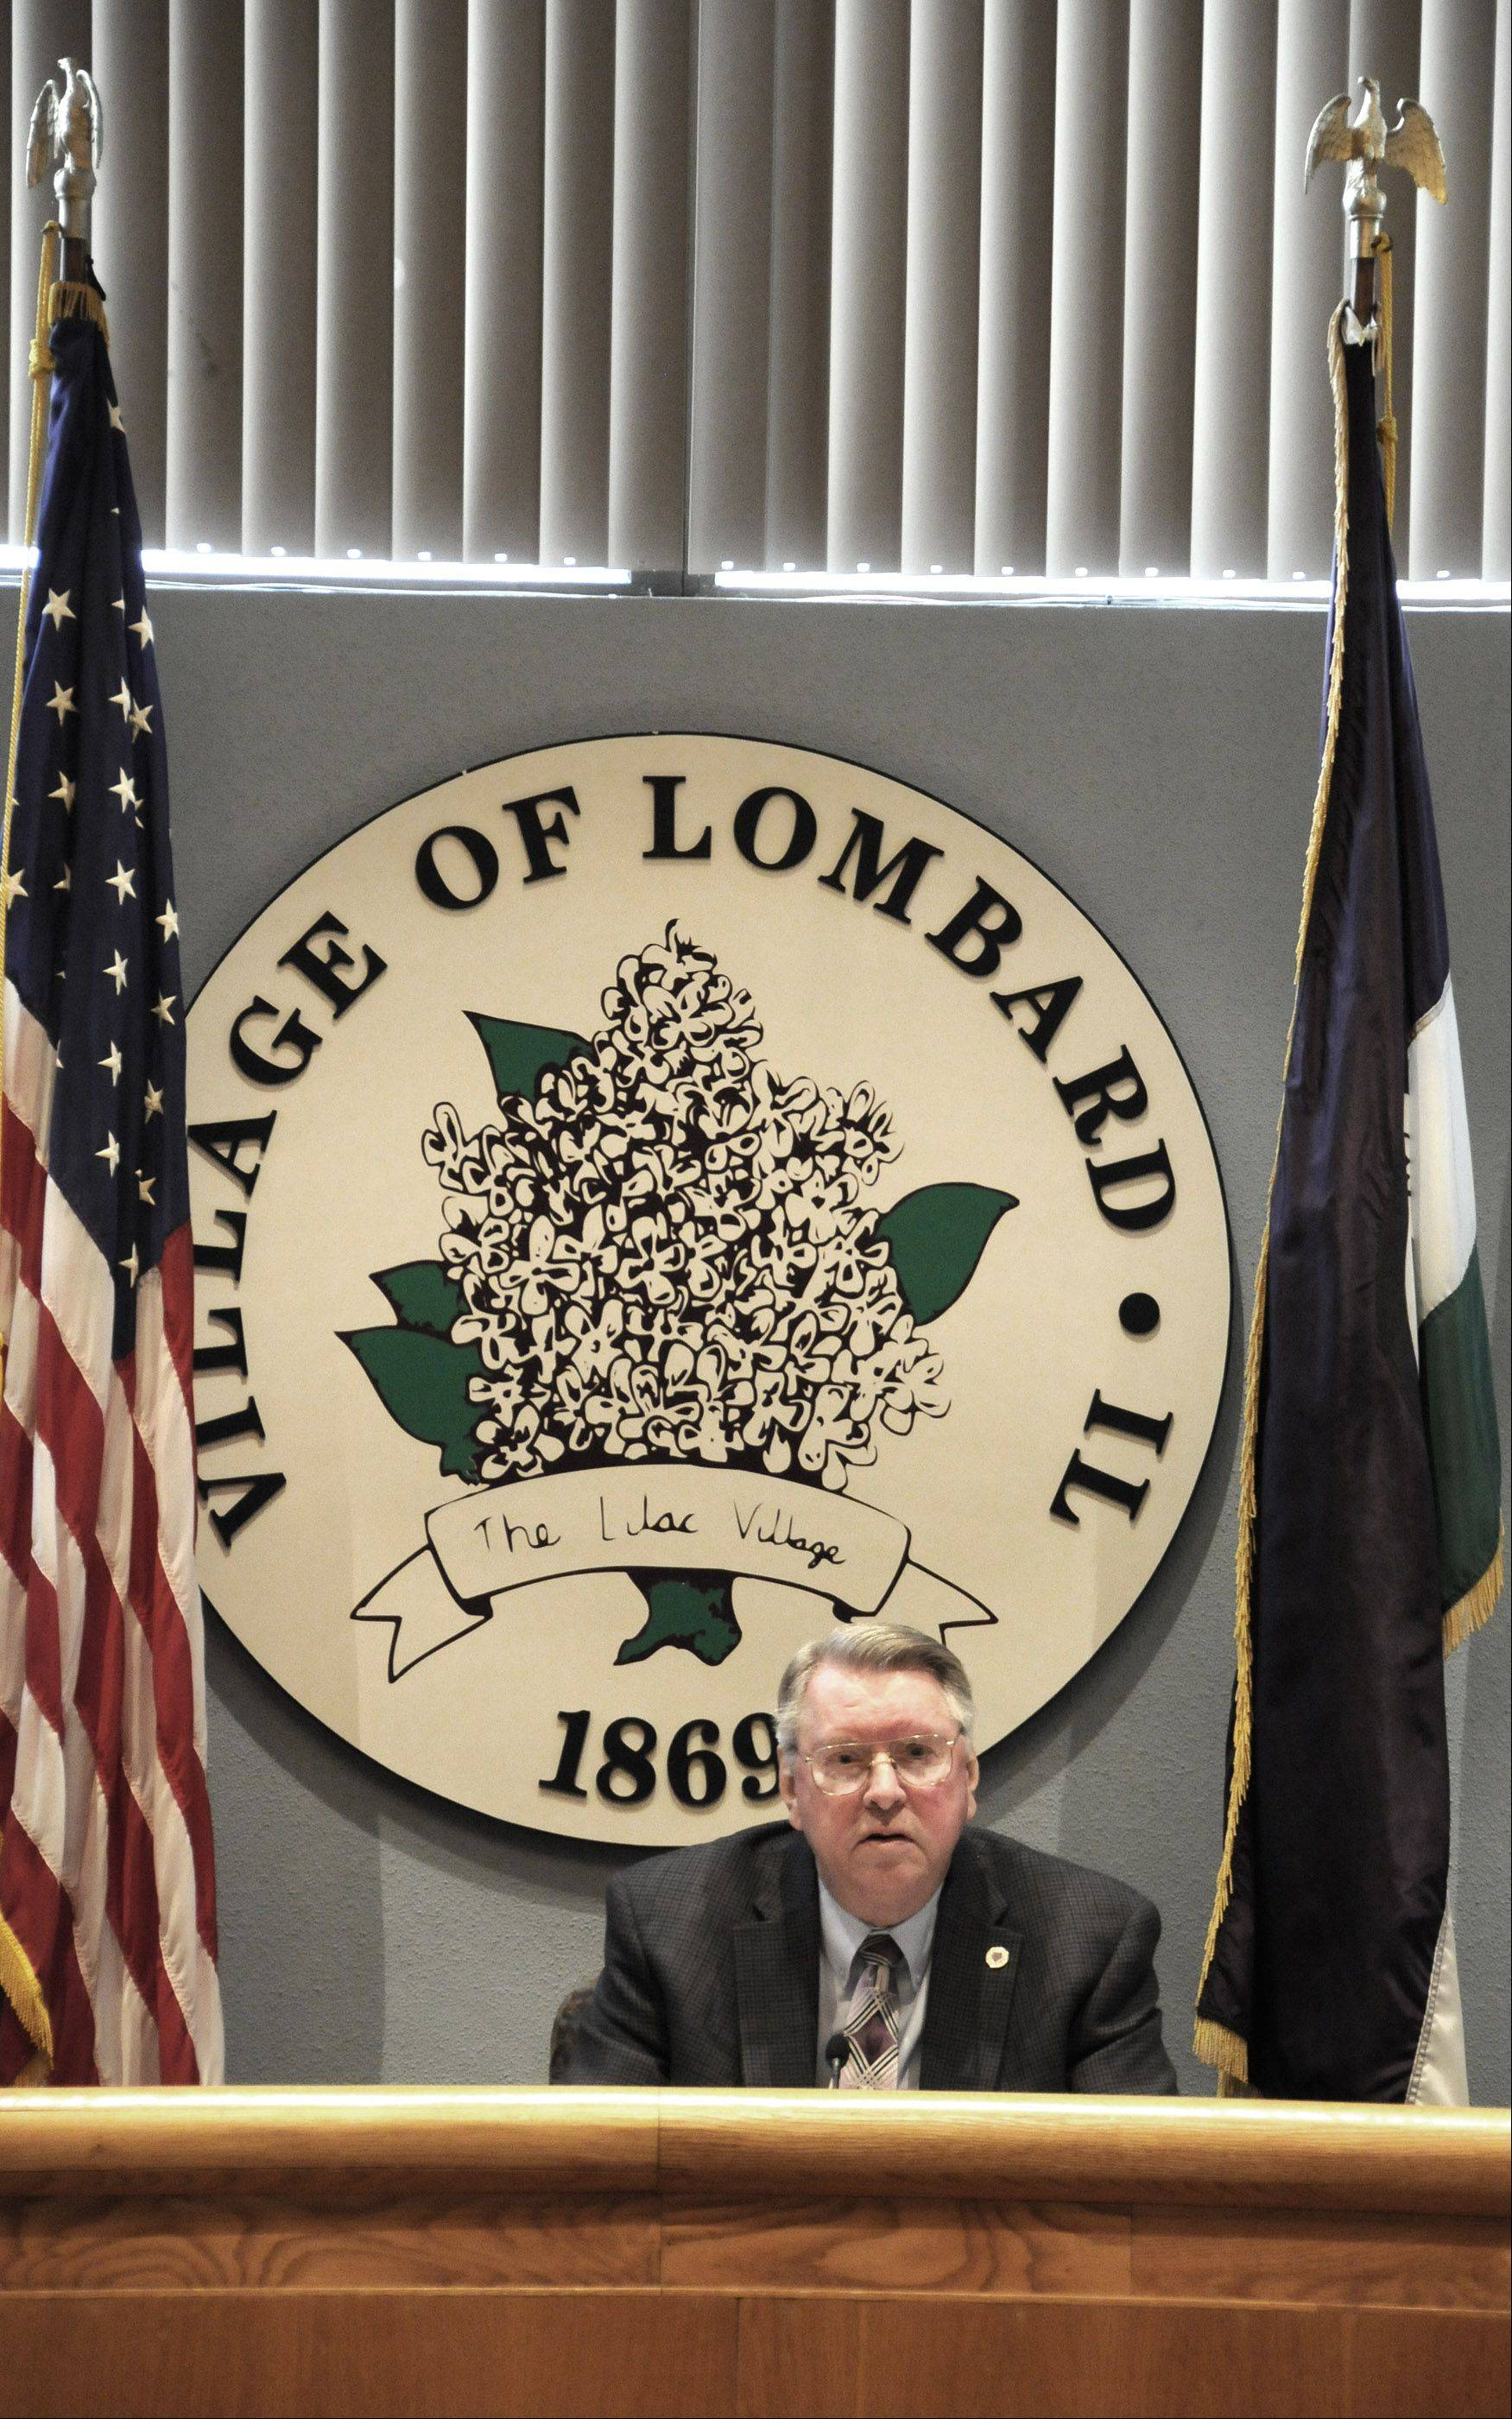 Lombard Village President Bill Mueller led his village for almost 20 years after taking office in 1993, and is the longest-serving village president in Lombard's history. He died Saturday at age 76 from complications of West Nile virus.